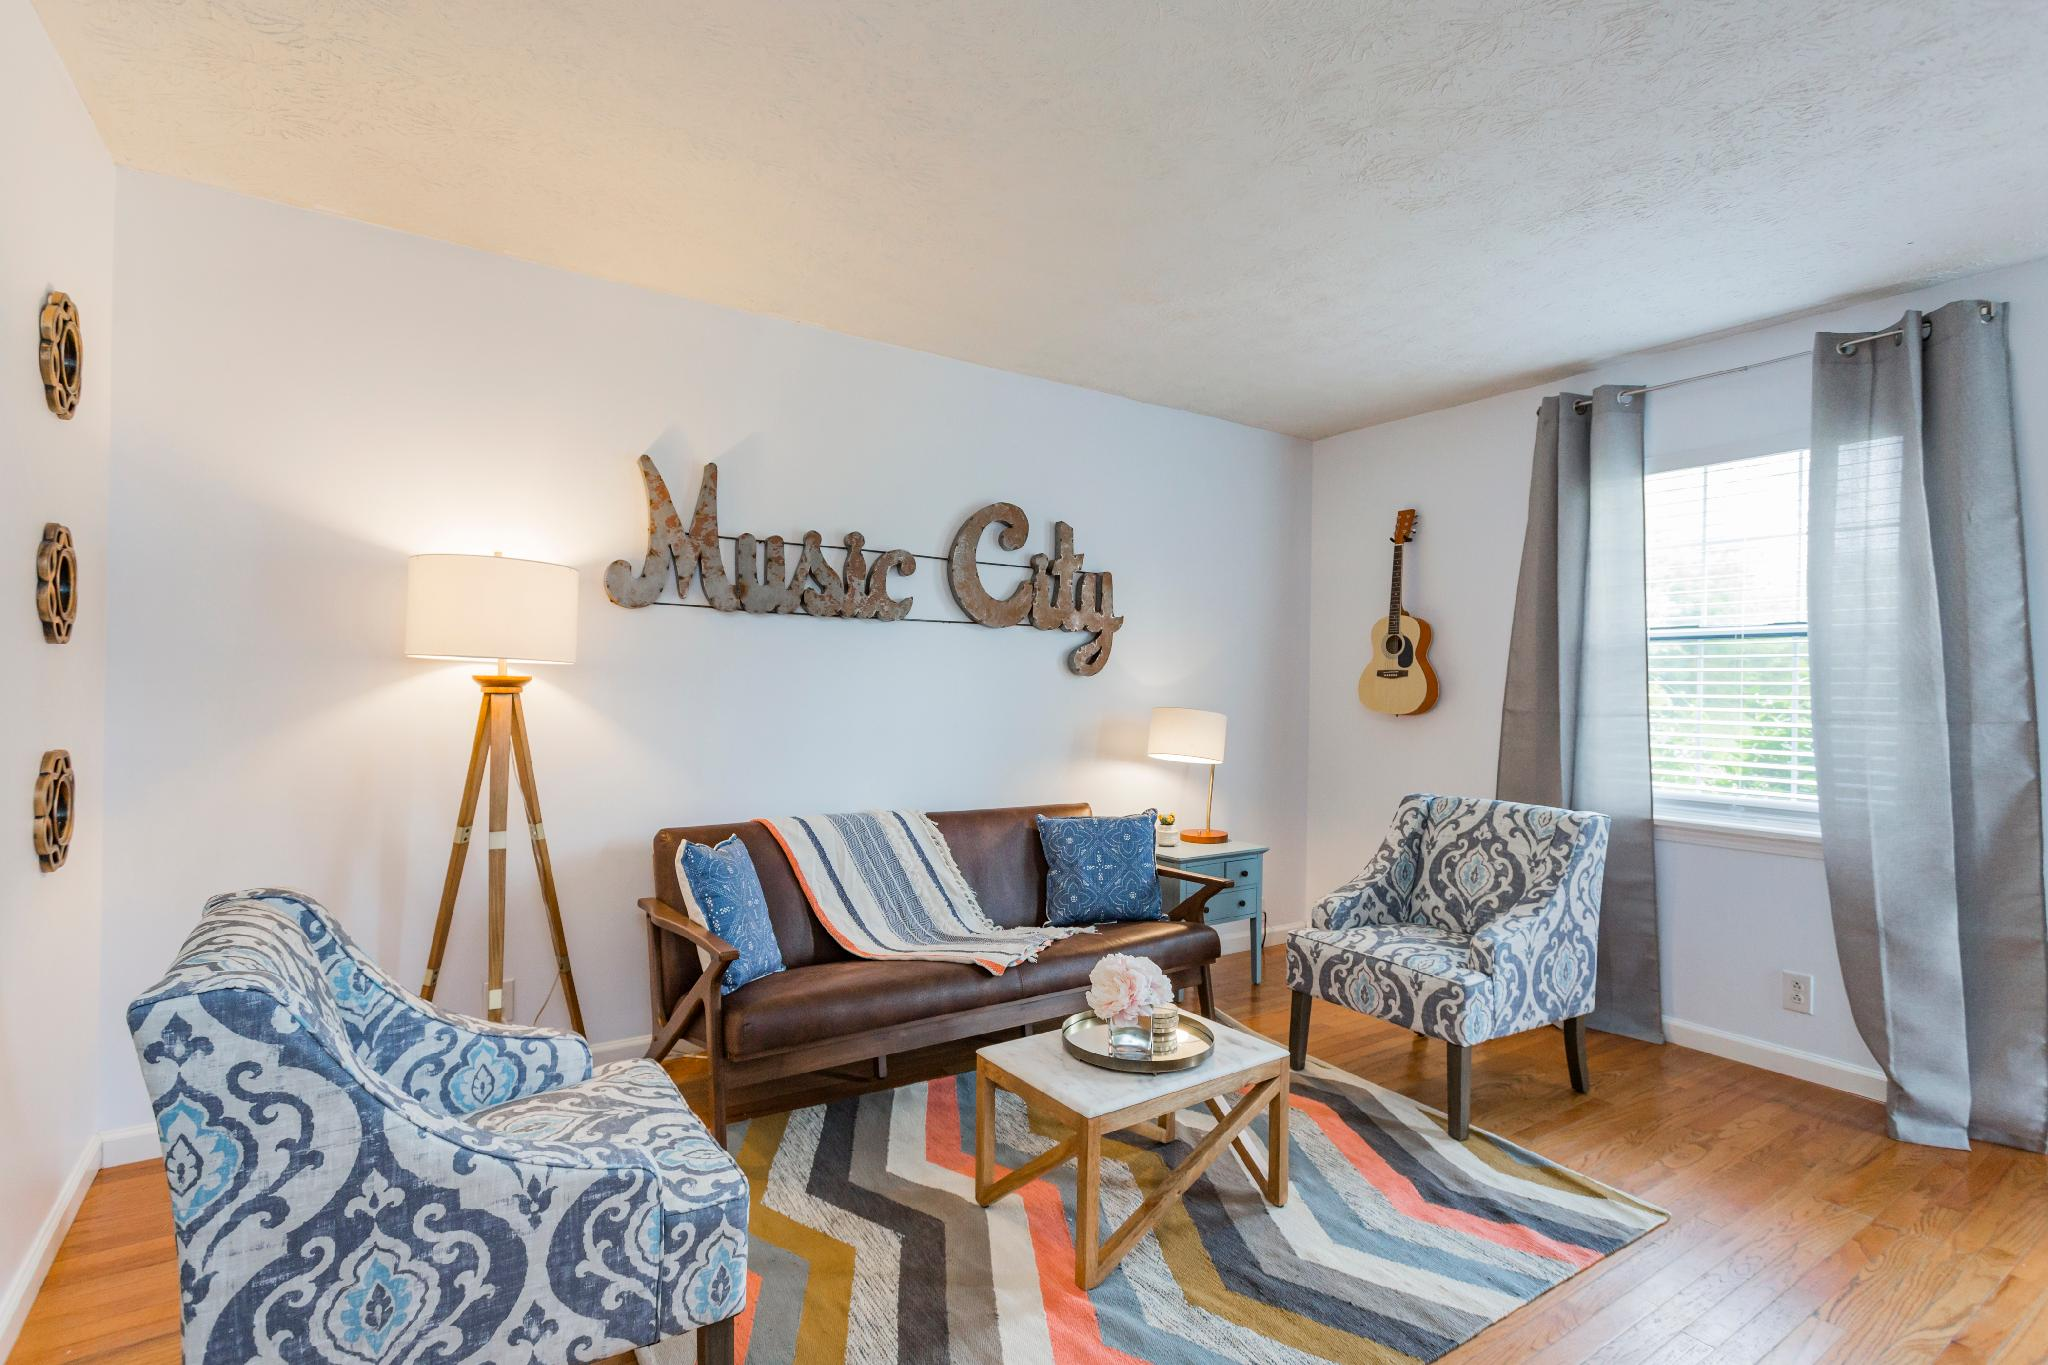 808 Riverside  · Take a Jog in Nearby Shelby Park at a Bright, Cozy Home